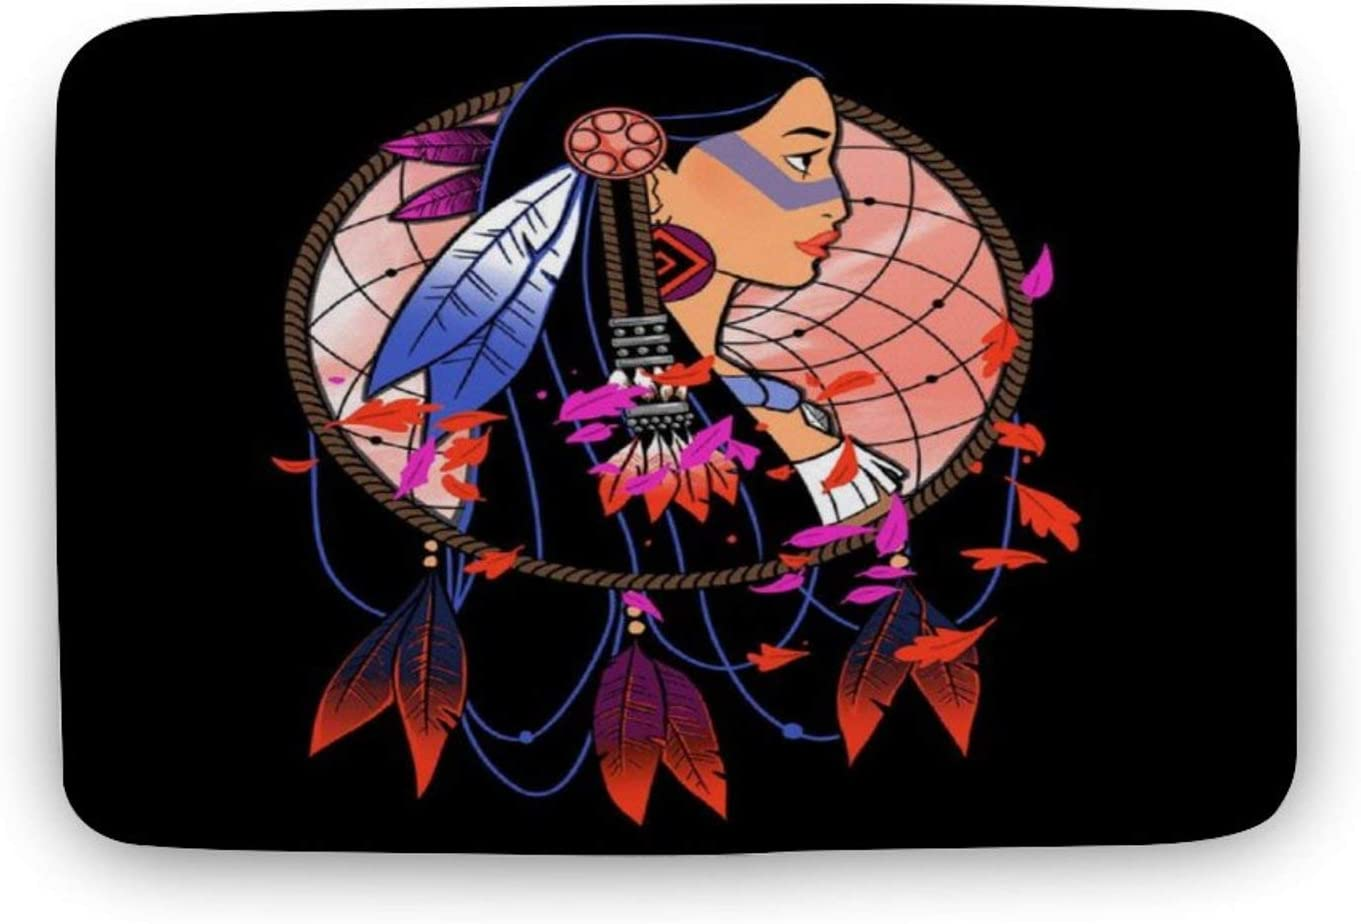 Pocahontas Colours of The Wind Personalized Entrance Door mat, Bathroom Non-Slip Absorbent mat, Kitchen Decoration Area mat